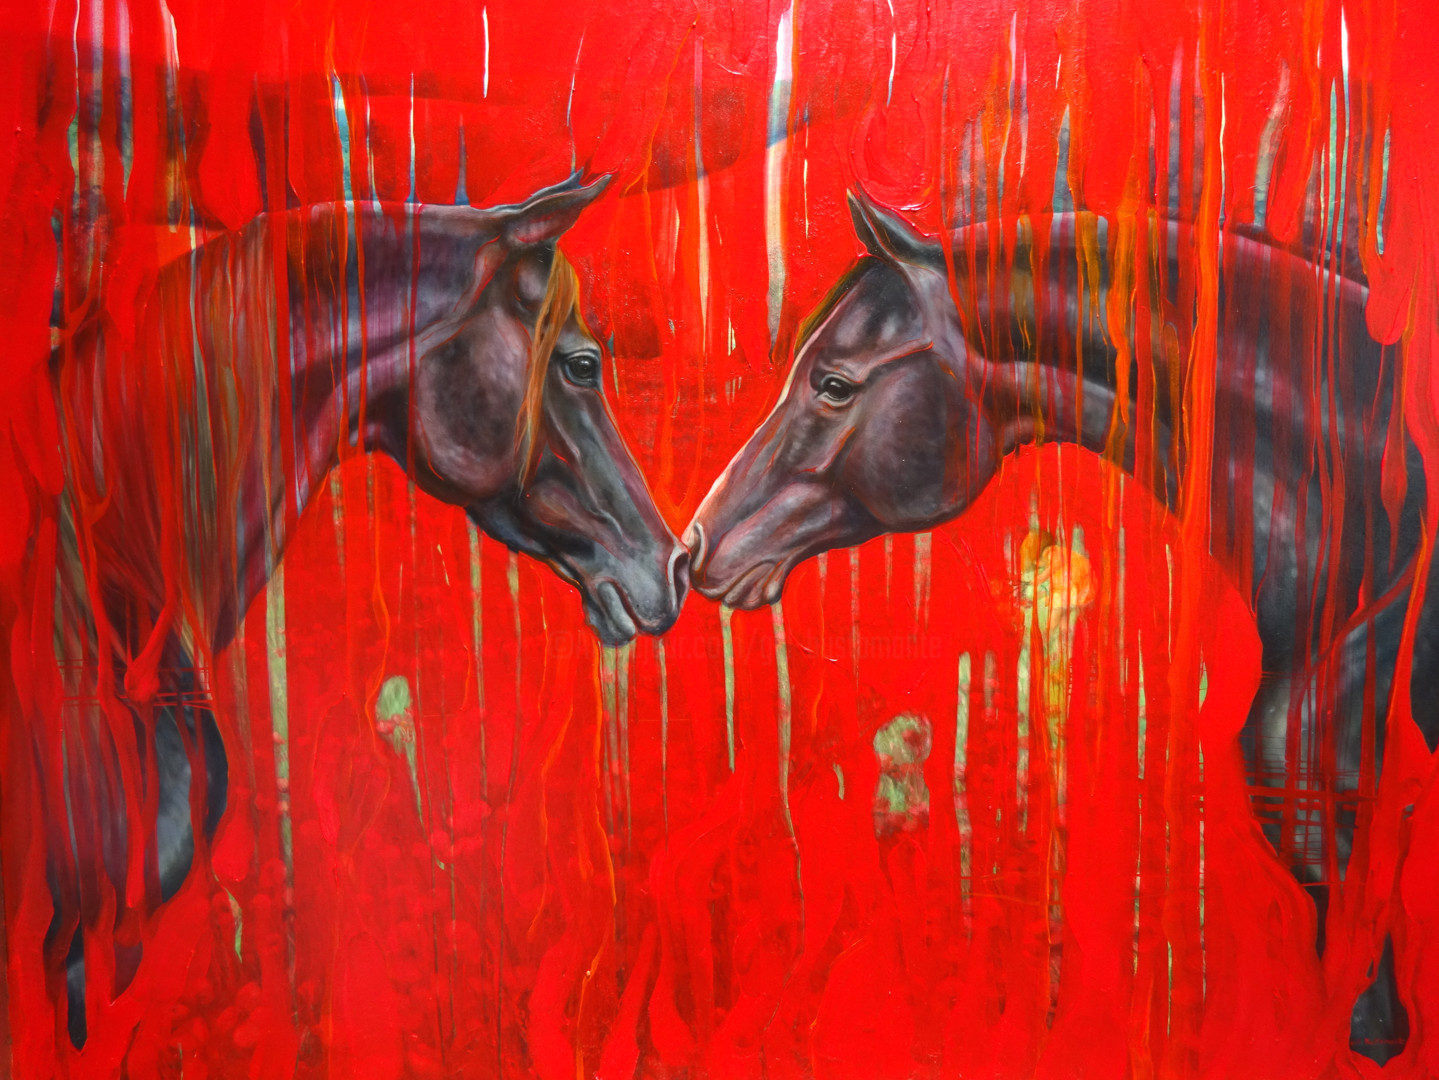 Equine Dreaming A Big Red Horse Painting Painting By Gill Bustamante Artmajeur